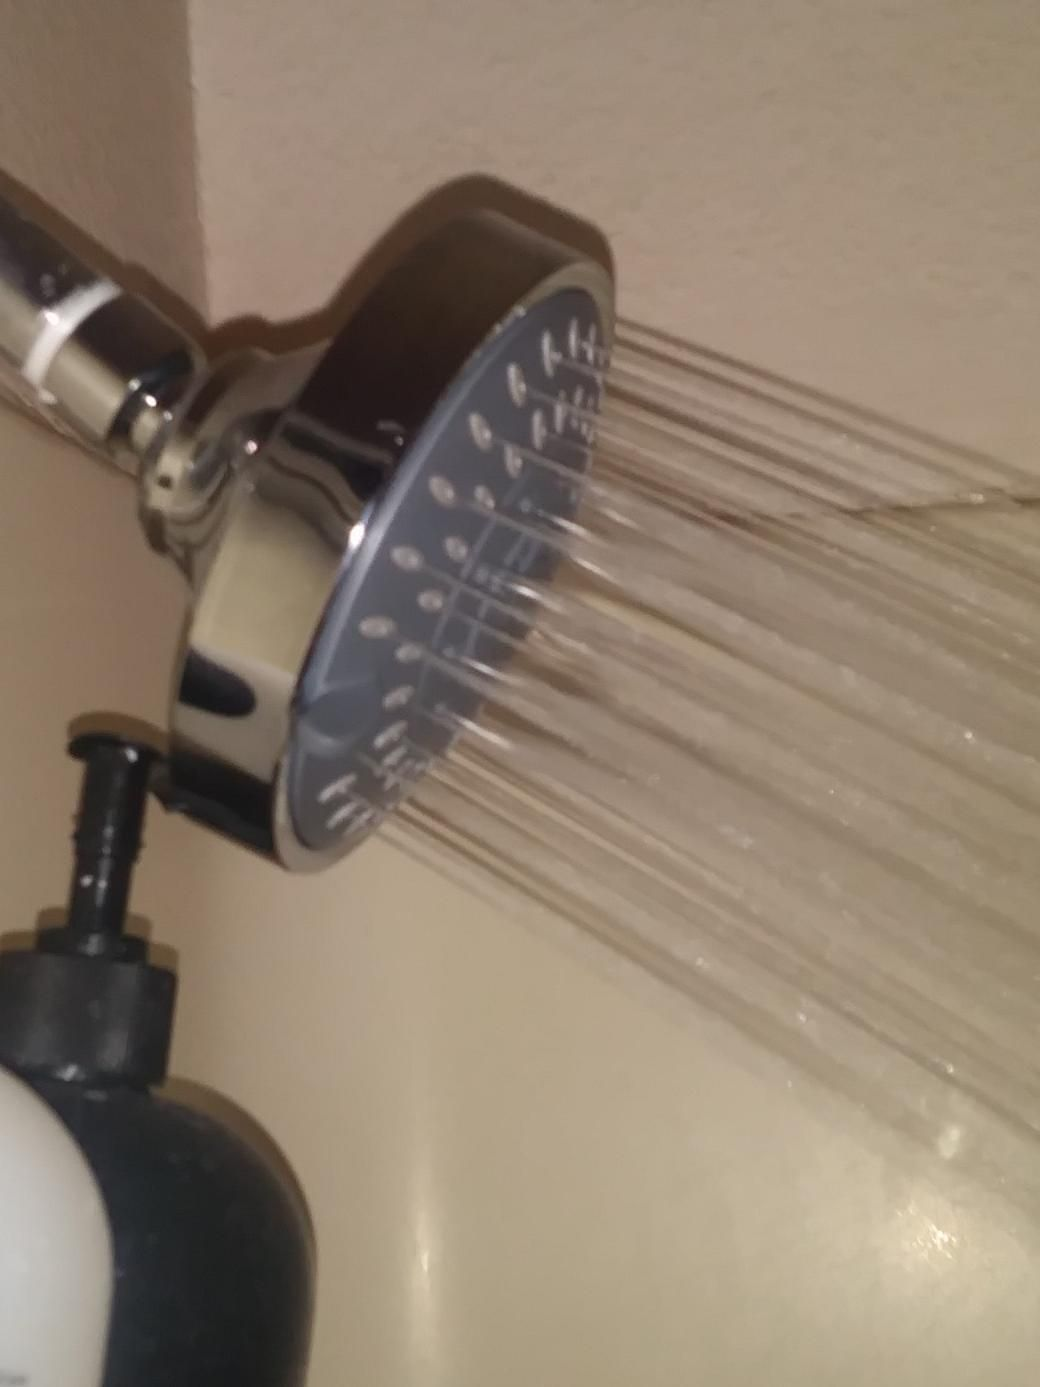 I Needed To Replace My Old Shower Head After Doing Some Research